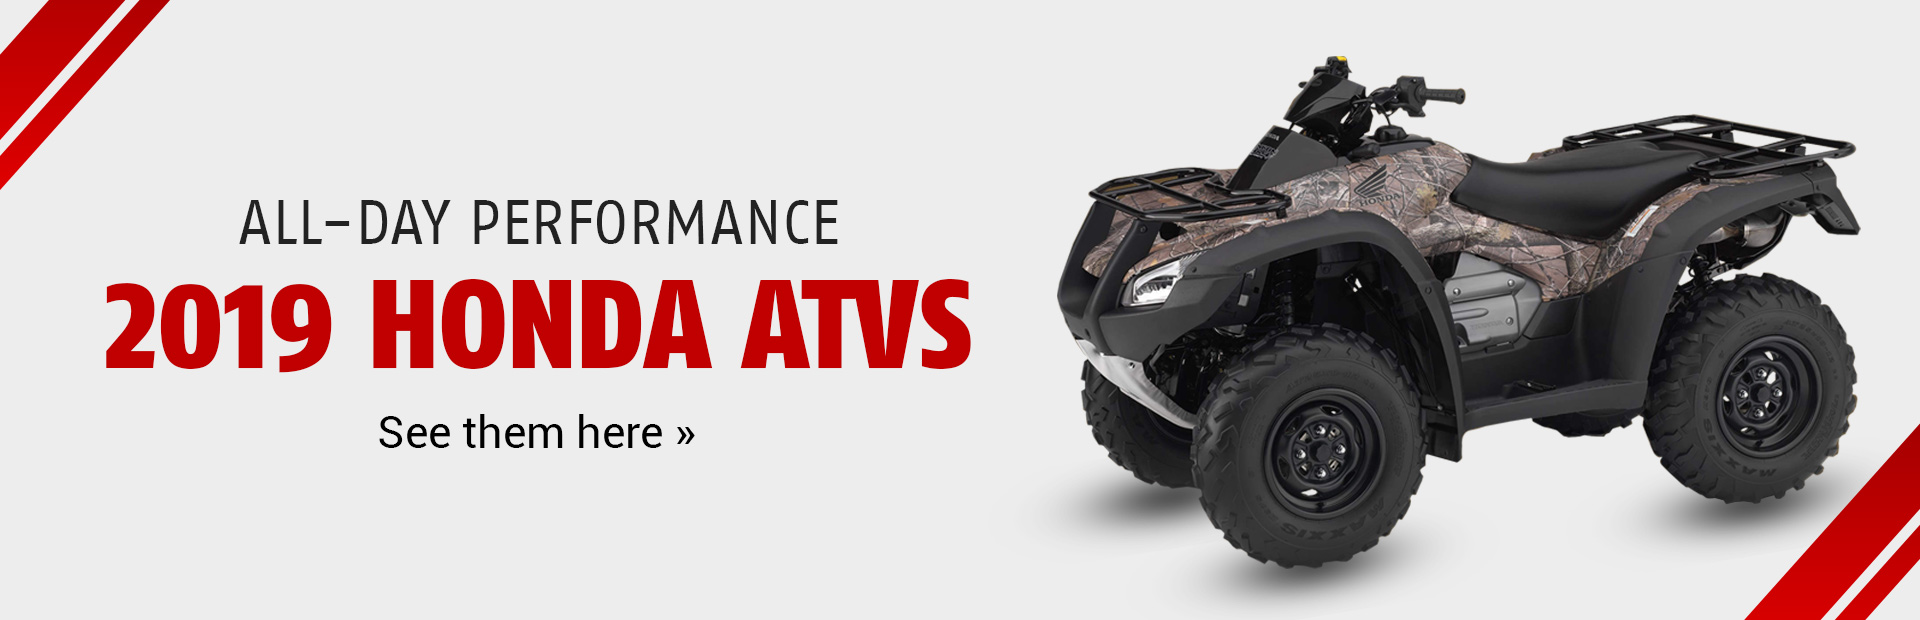 hight resolution of 2019 honda atvs click here to view the models